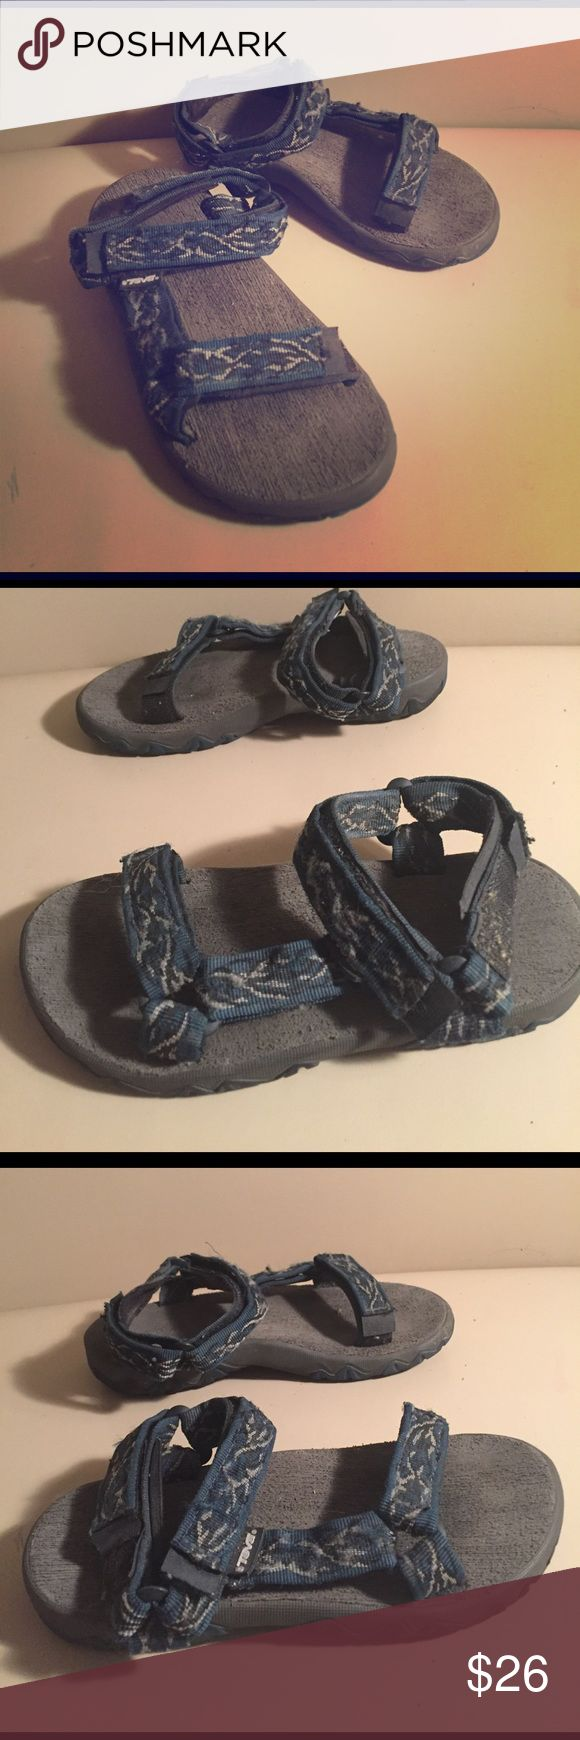 Blue Black Teva Kids Sports Sandals Size 3 Black and blue kids Teva Sports Sandals Size 3. Good used condition but could be clean some. Plenty of wear left in them. Please see pictures. Teva Shoes Sandals & Flip Flops